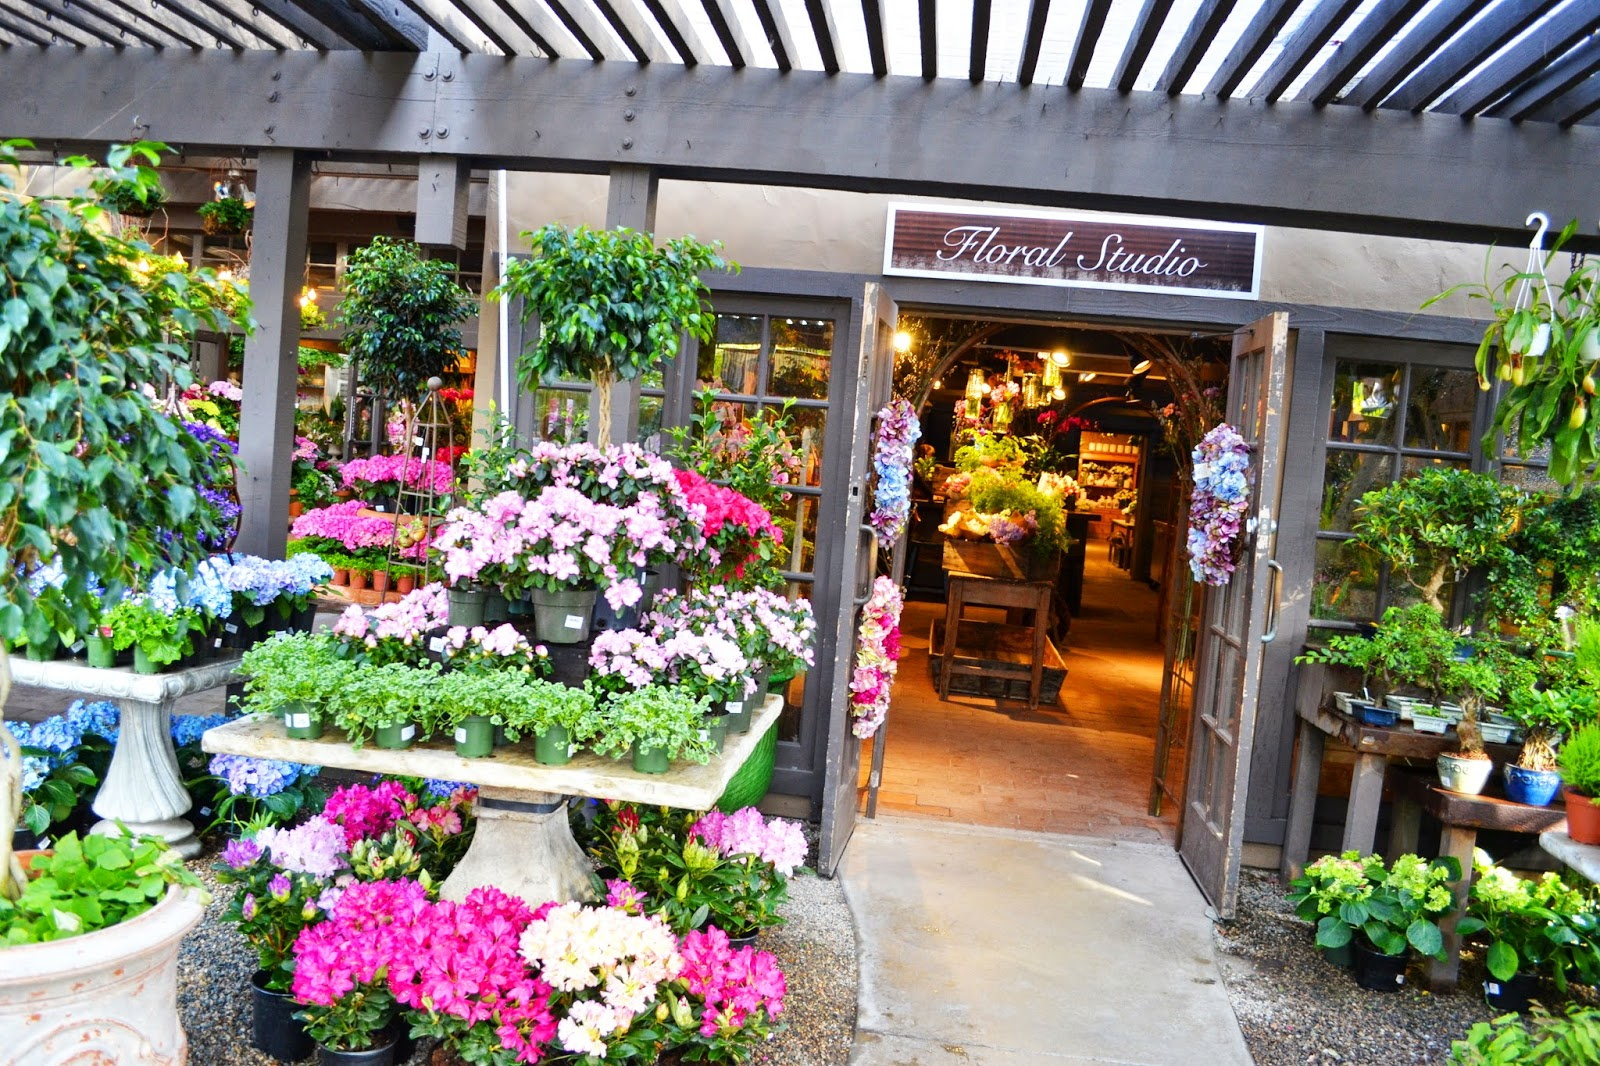 At Roger S Gardens In Newport Beach And Wanted To Take You With Me Share Their Beautiful Spring Display Of Flowers Located Fl Studio